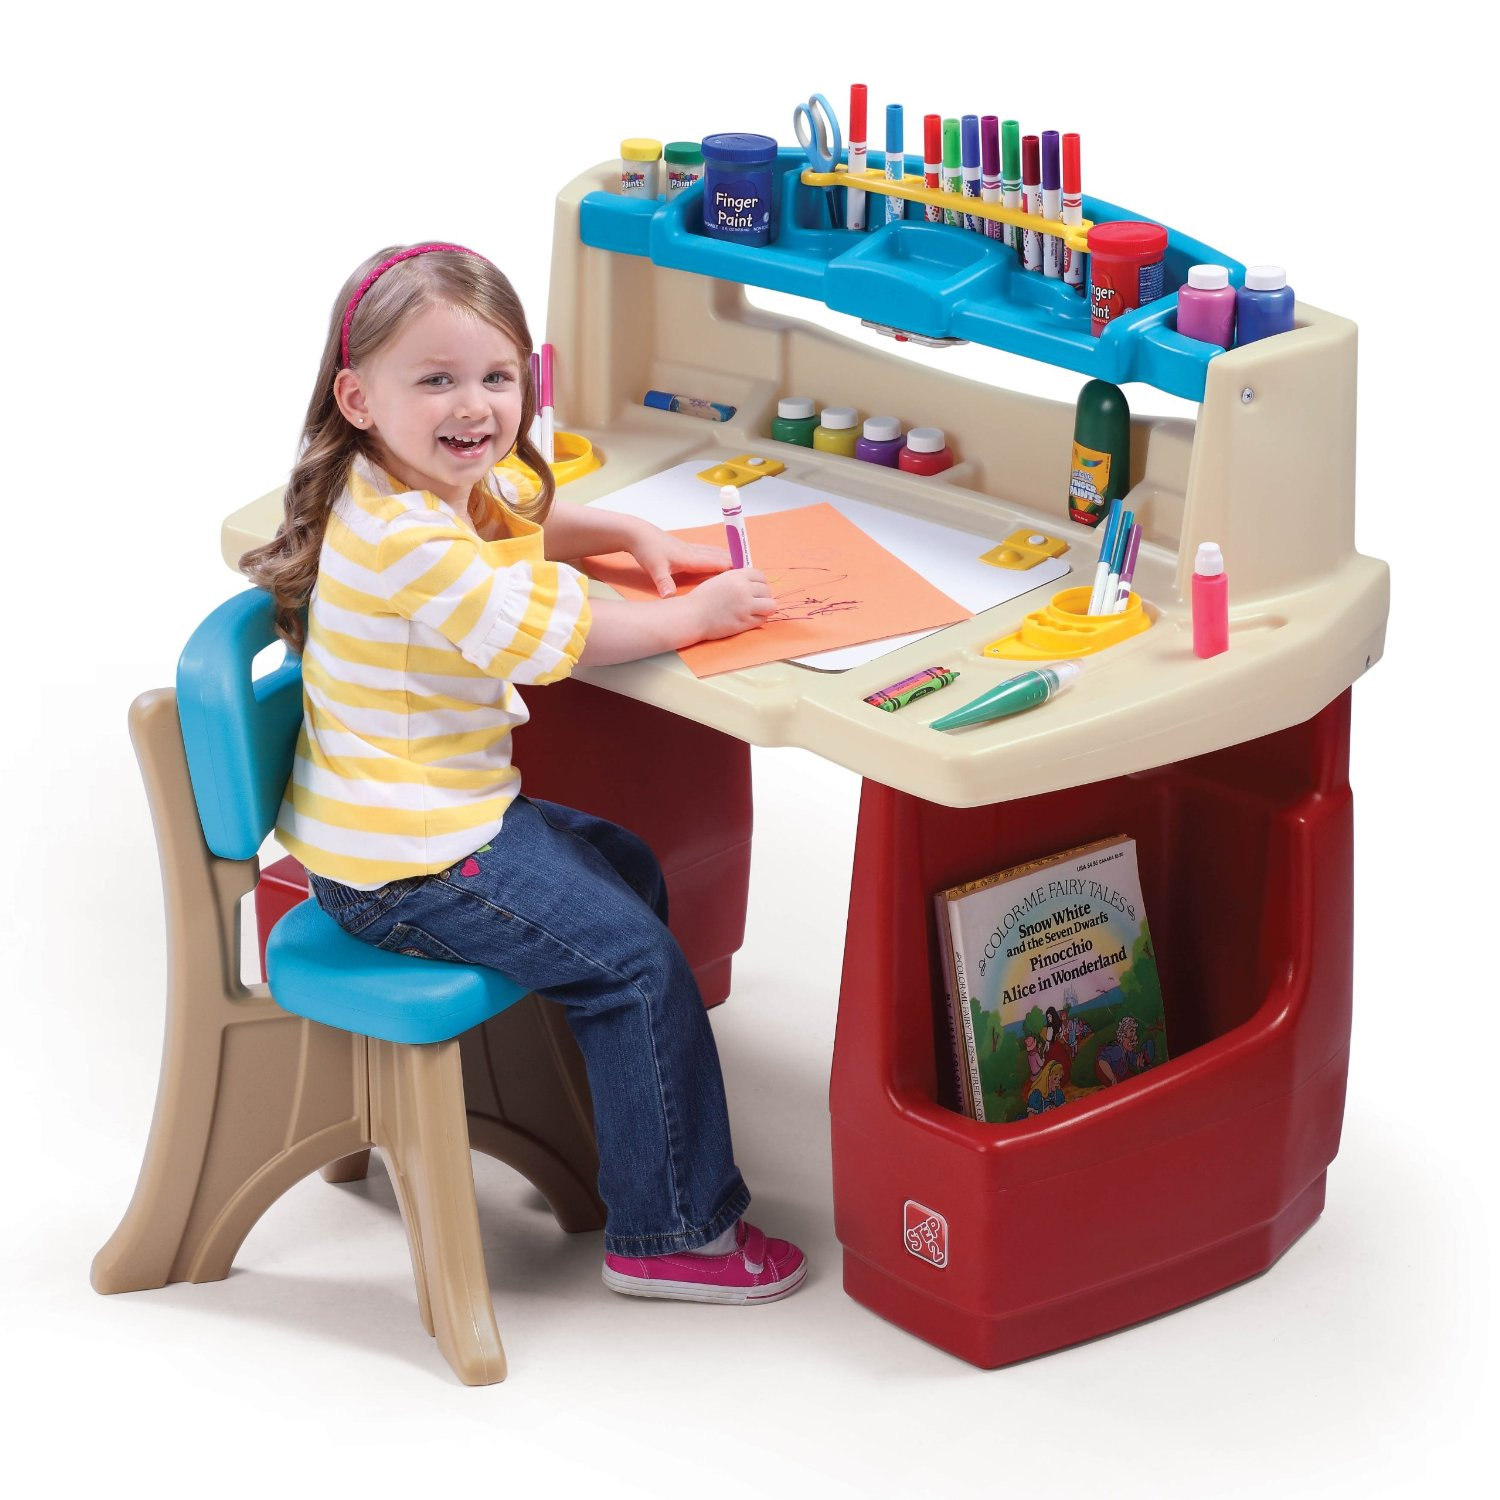 Toddler Art Desk With Chair Set Molded Plastic Supply Storage